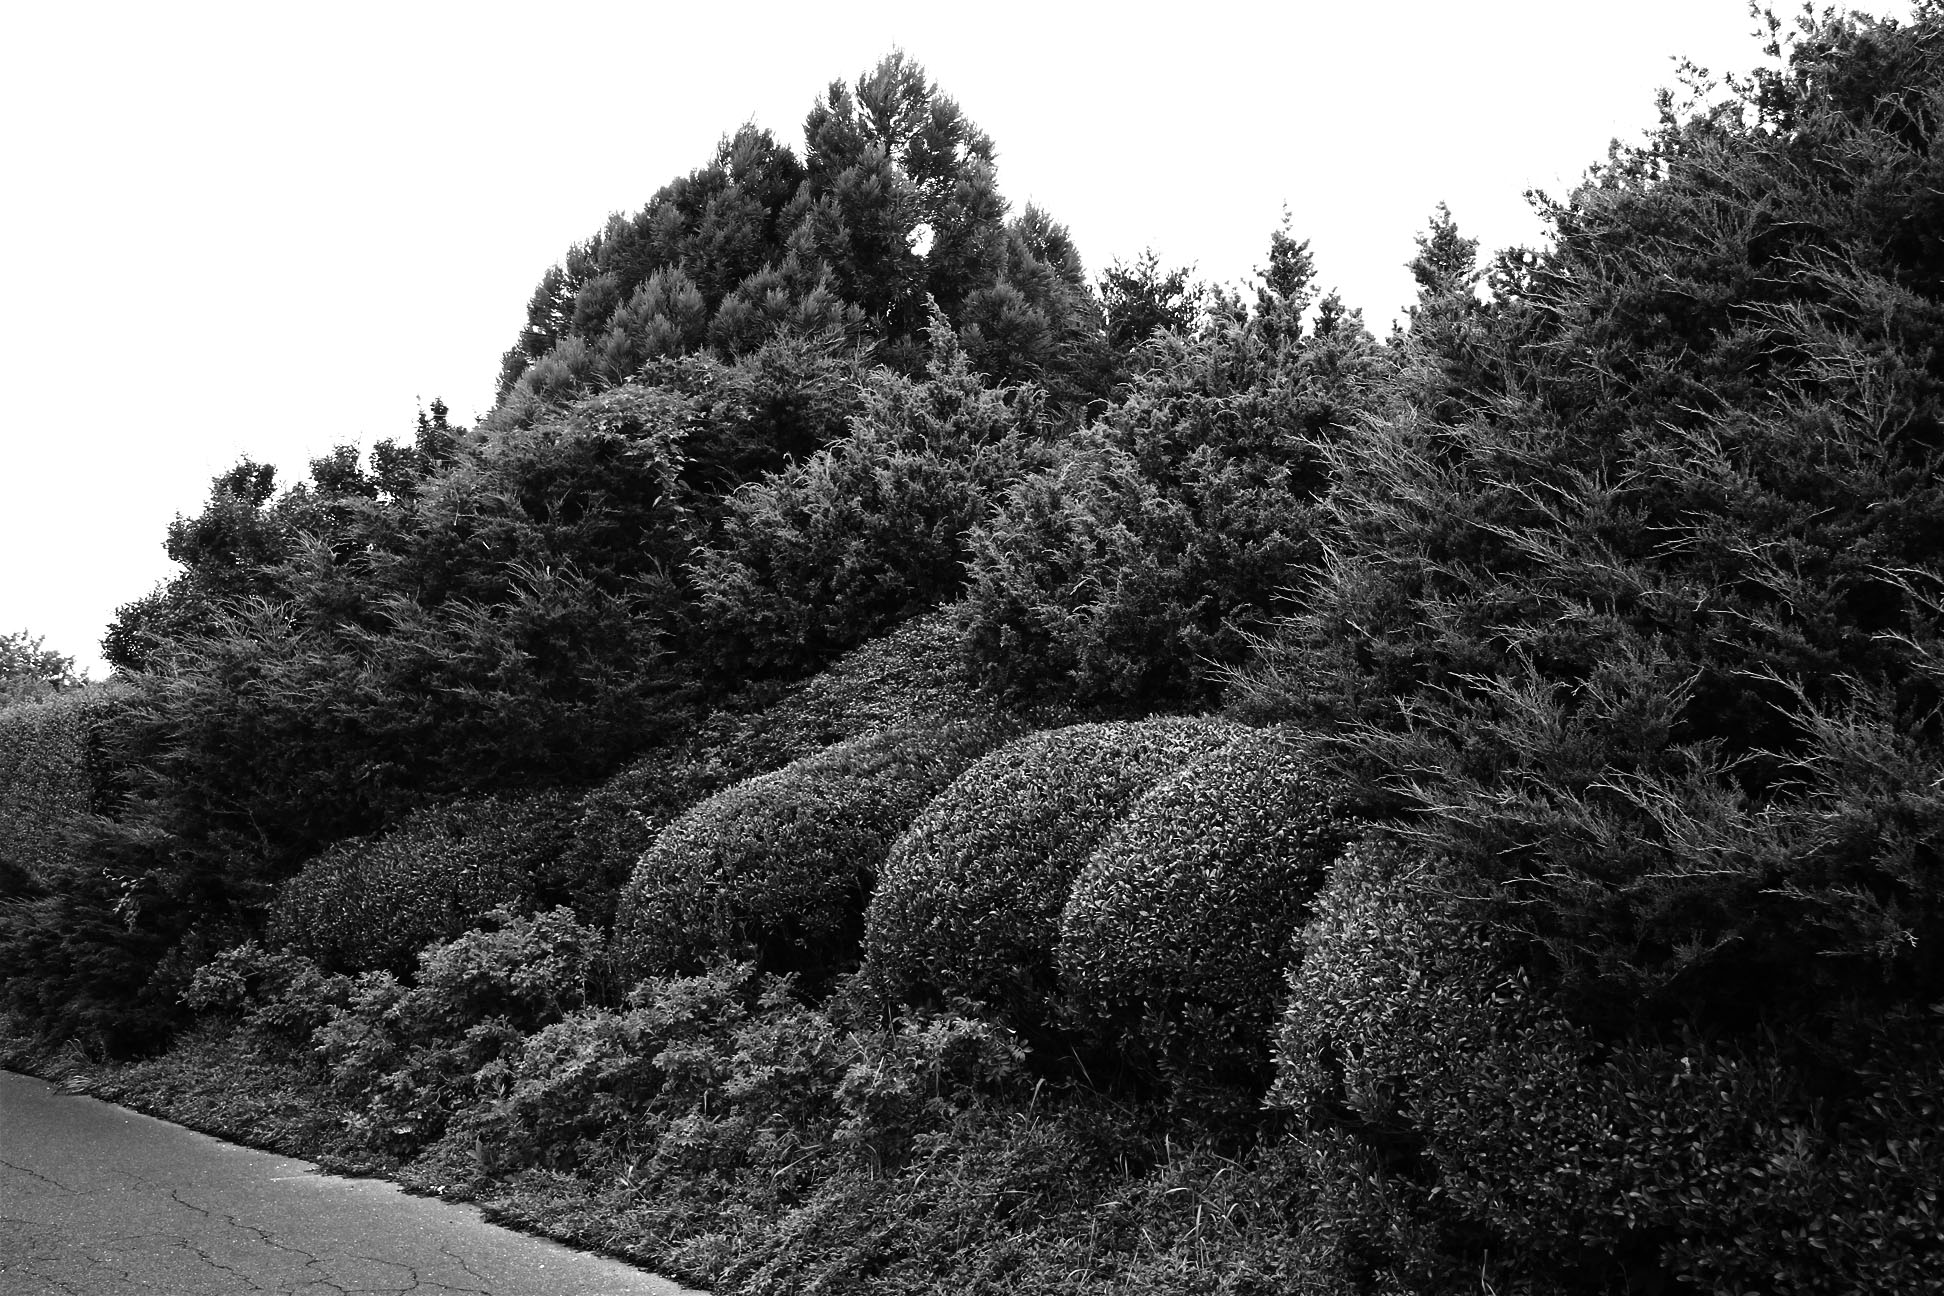 landscaping2bw